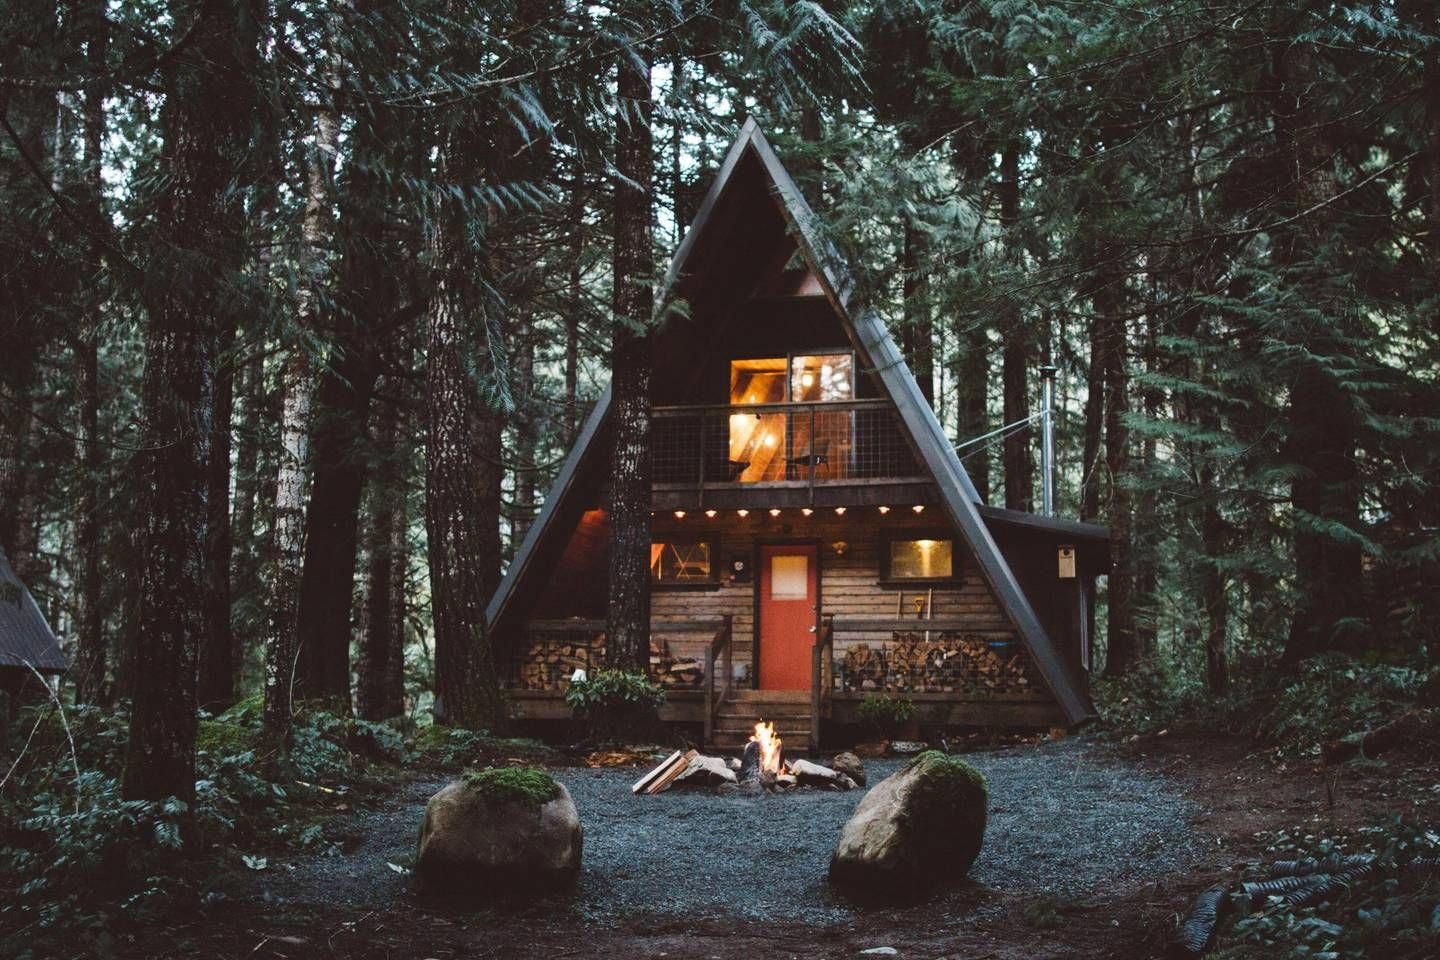 Cabin rental in the forest of packwood washington